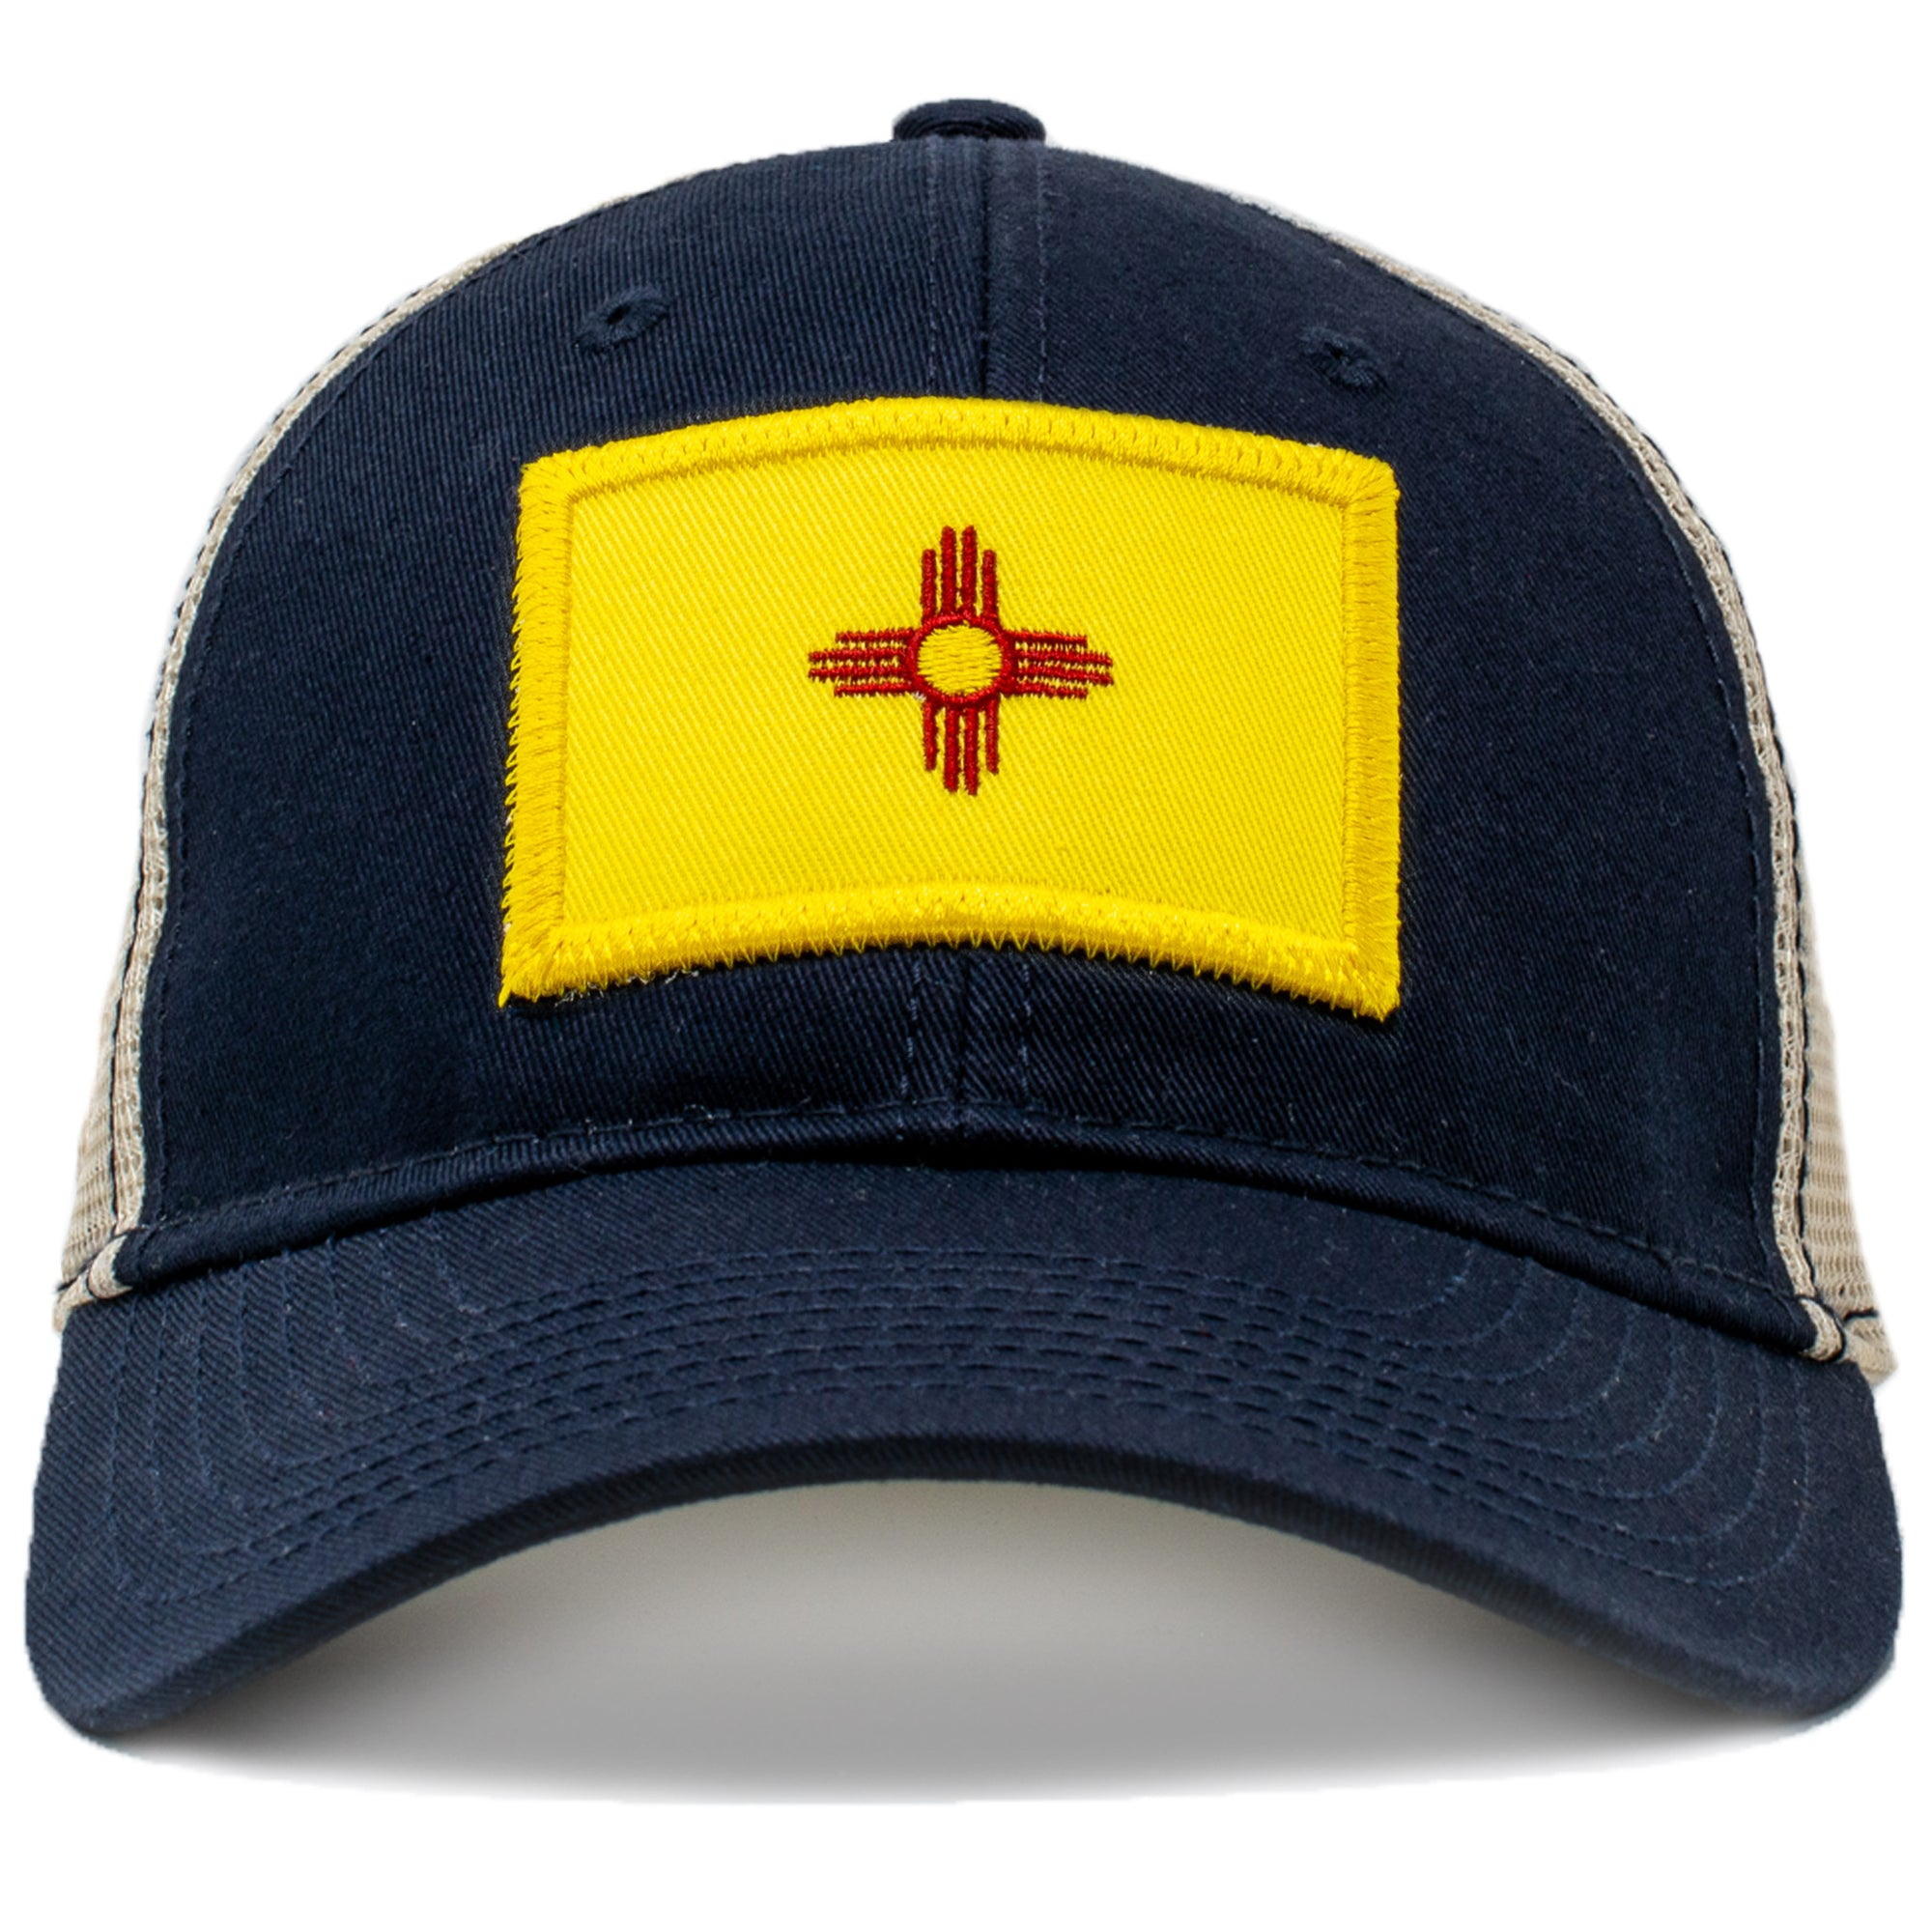 Vintage New Mexico flag hat